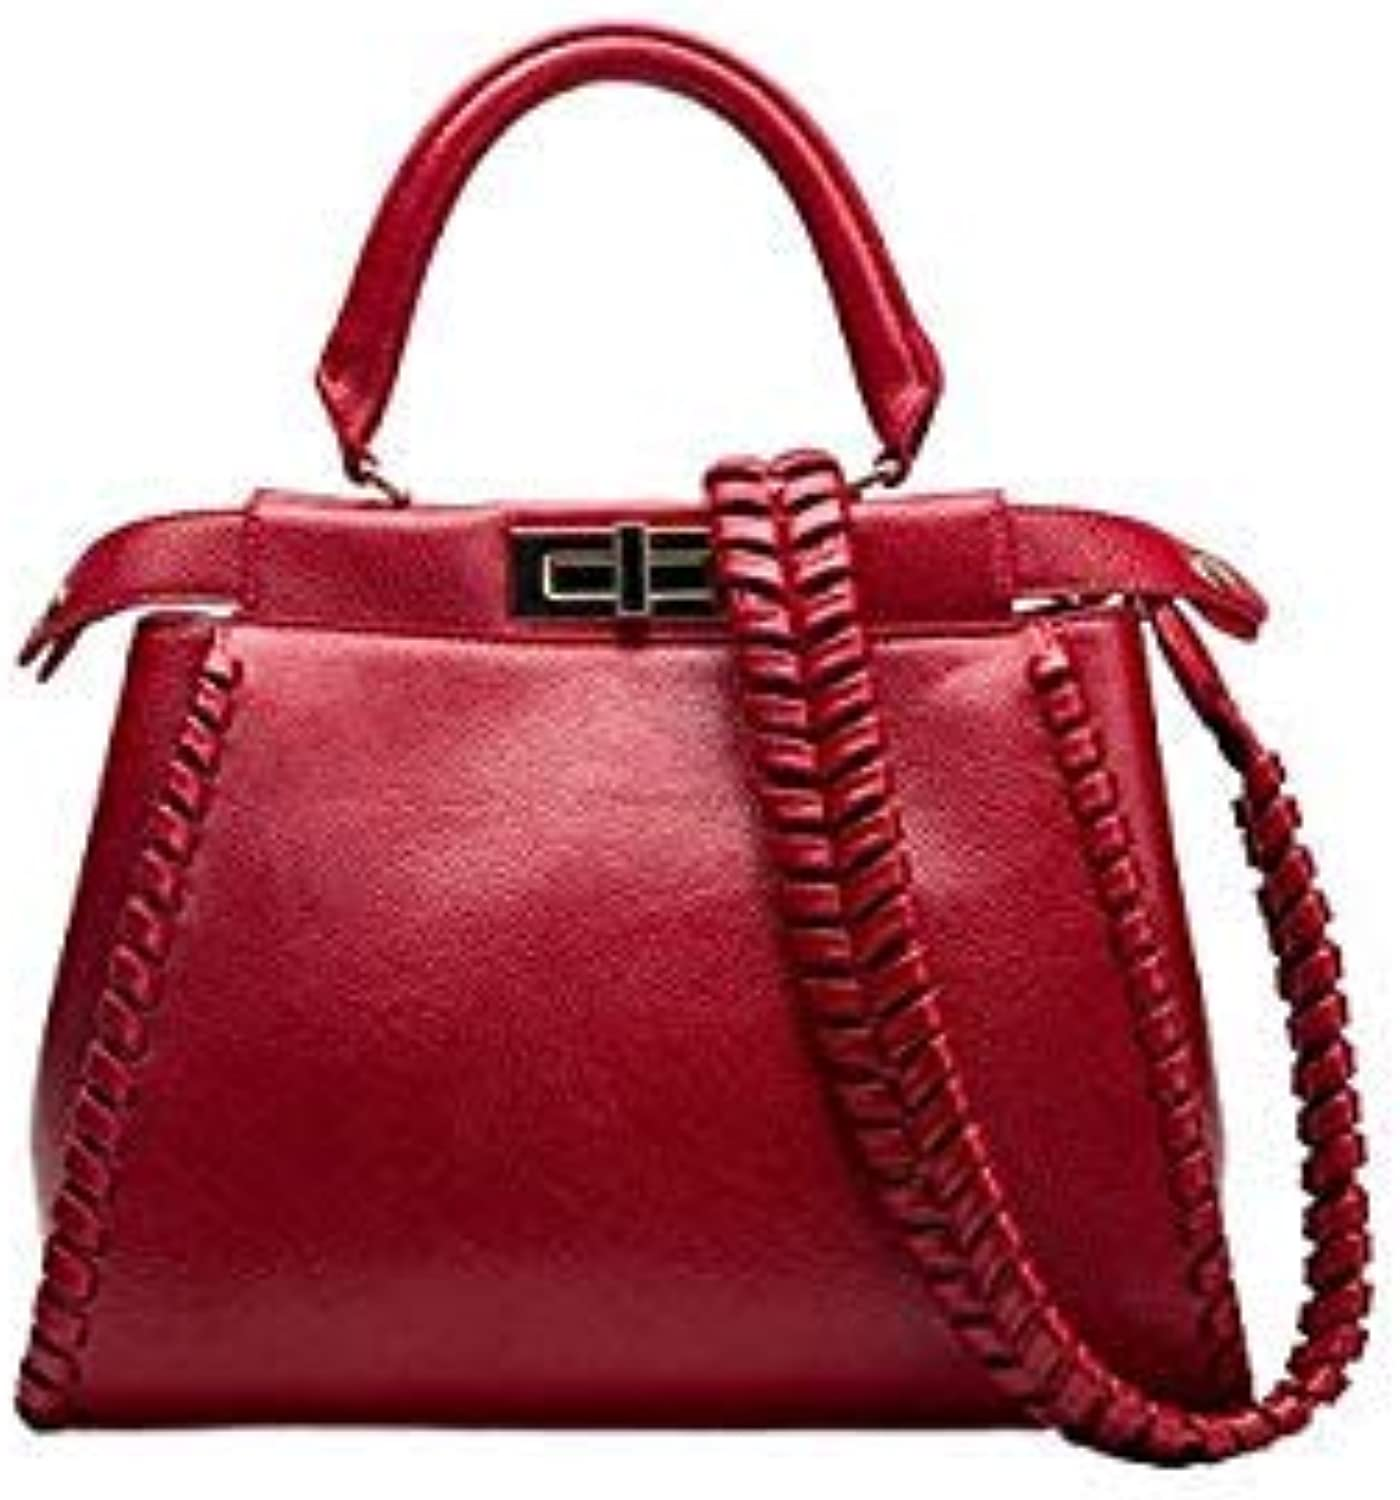 Bloomerang New Classic Celebrity Women Knitting Design Peekaboo Cowhide Tote Split Leather Handbags Messenger Bags for Female an539 color Wine red